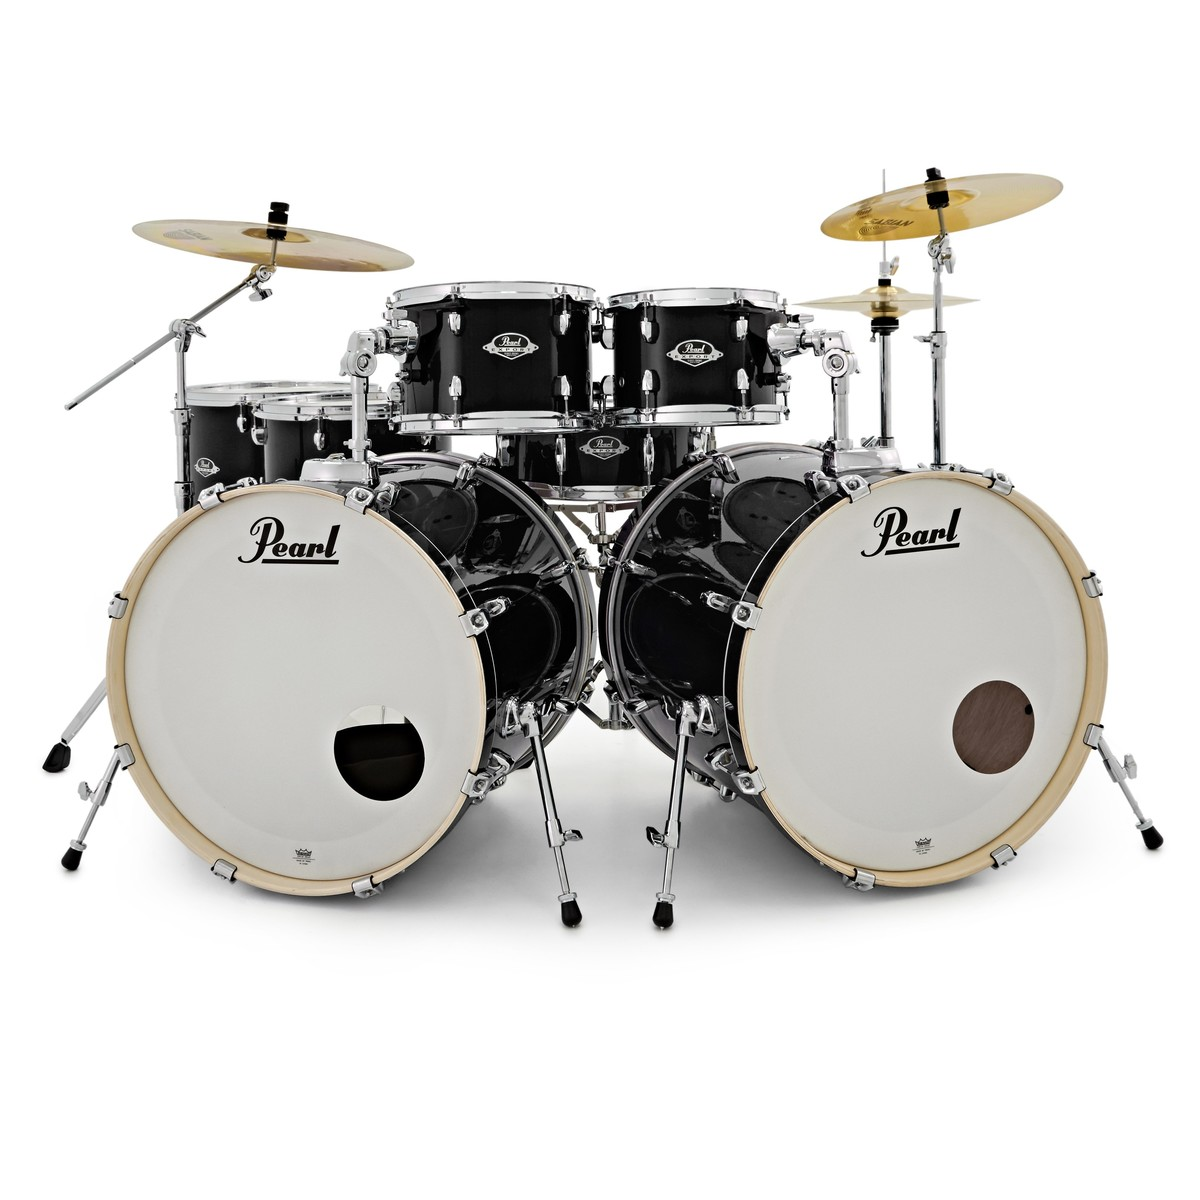 pearl exx export 7pc double bass drum kit jet black at gear4music. Black Bedroom Furniture Sets. Home Design Ideas